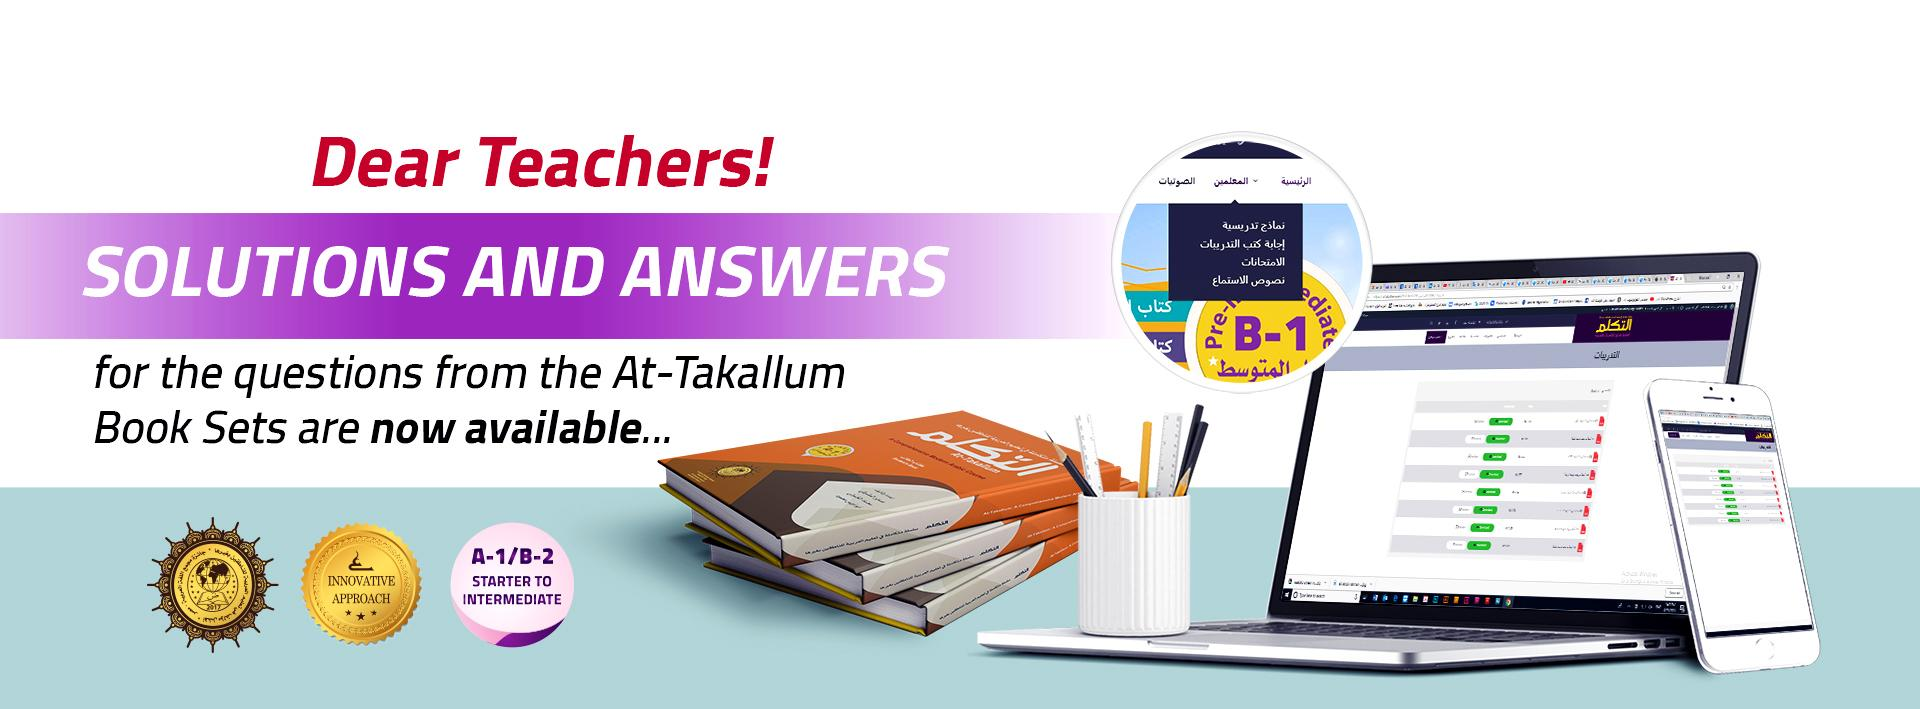 Solutions and Answers